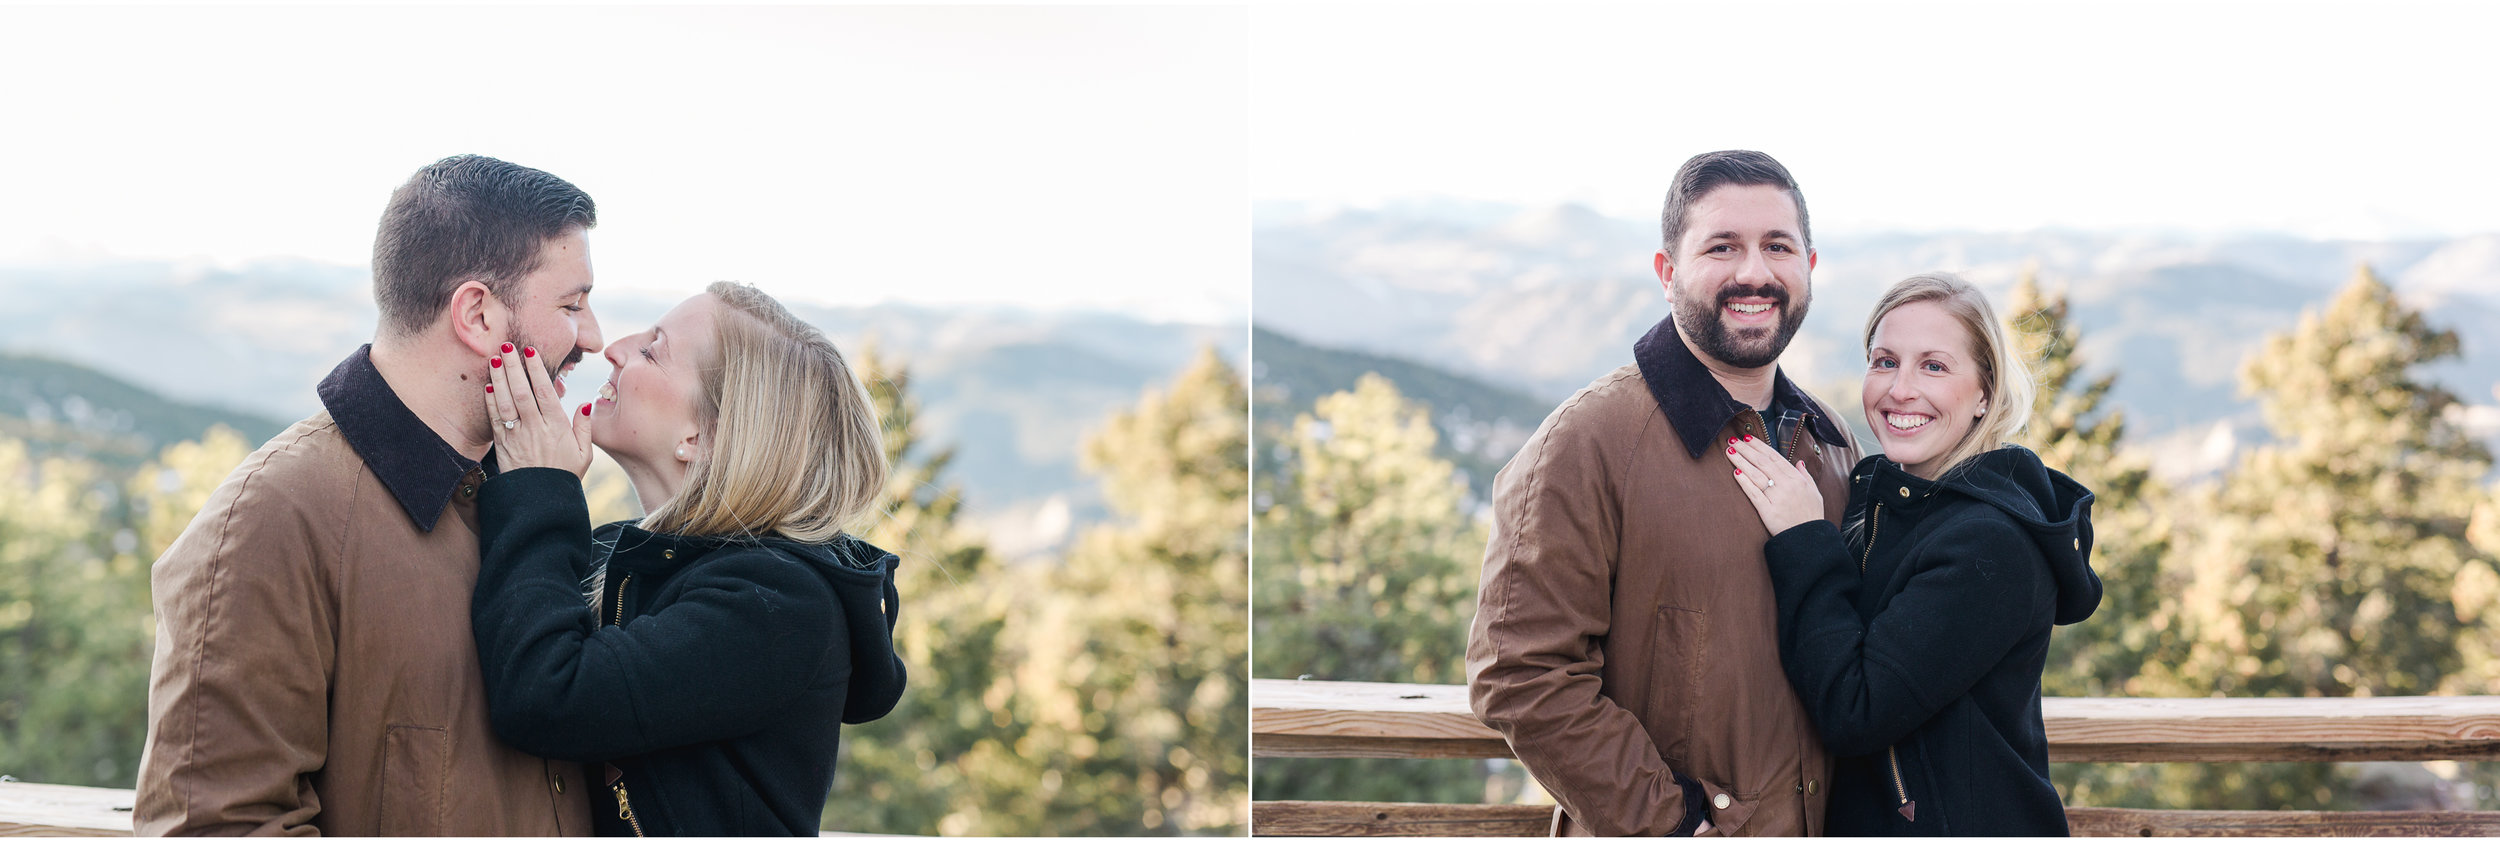 Engagement Photos in Boulder, CO 6.jpg